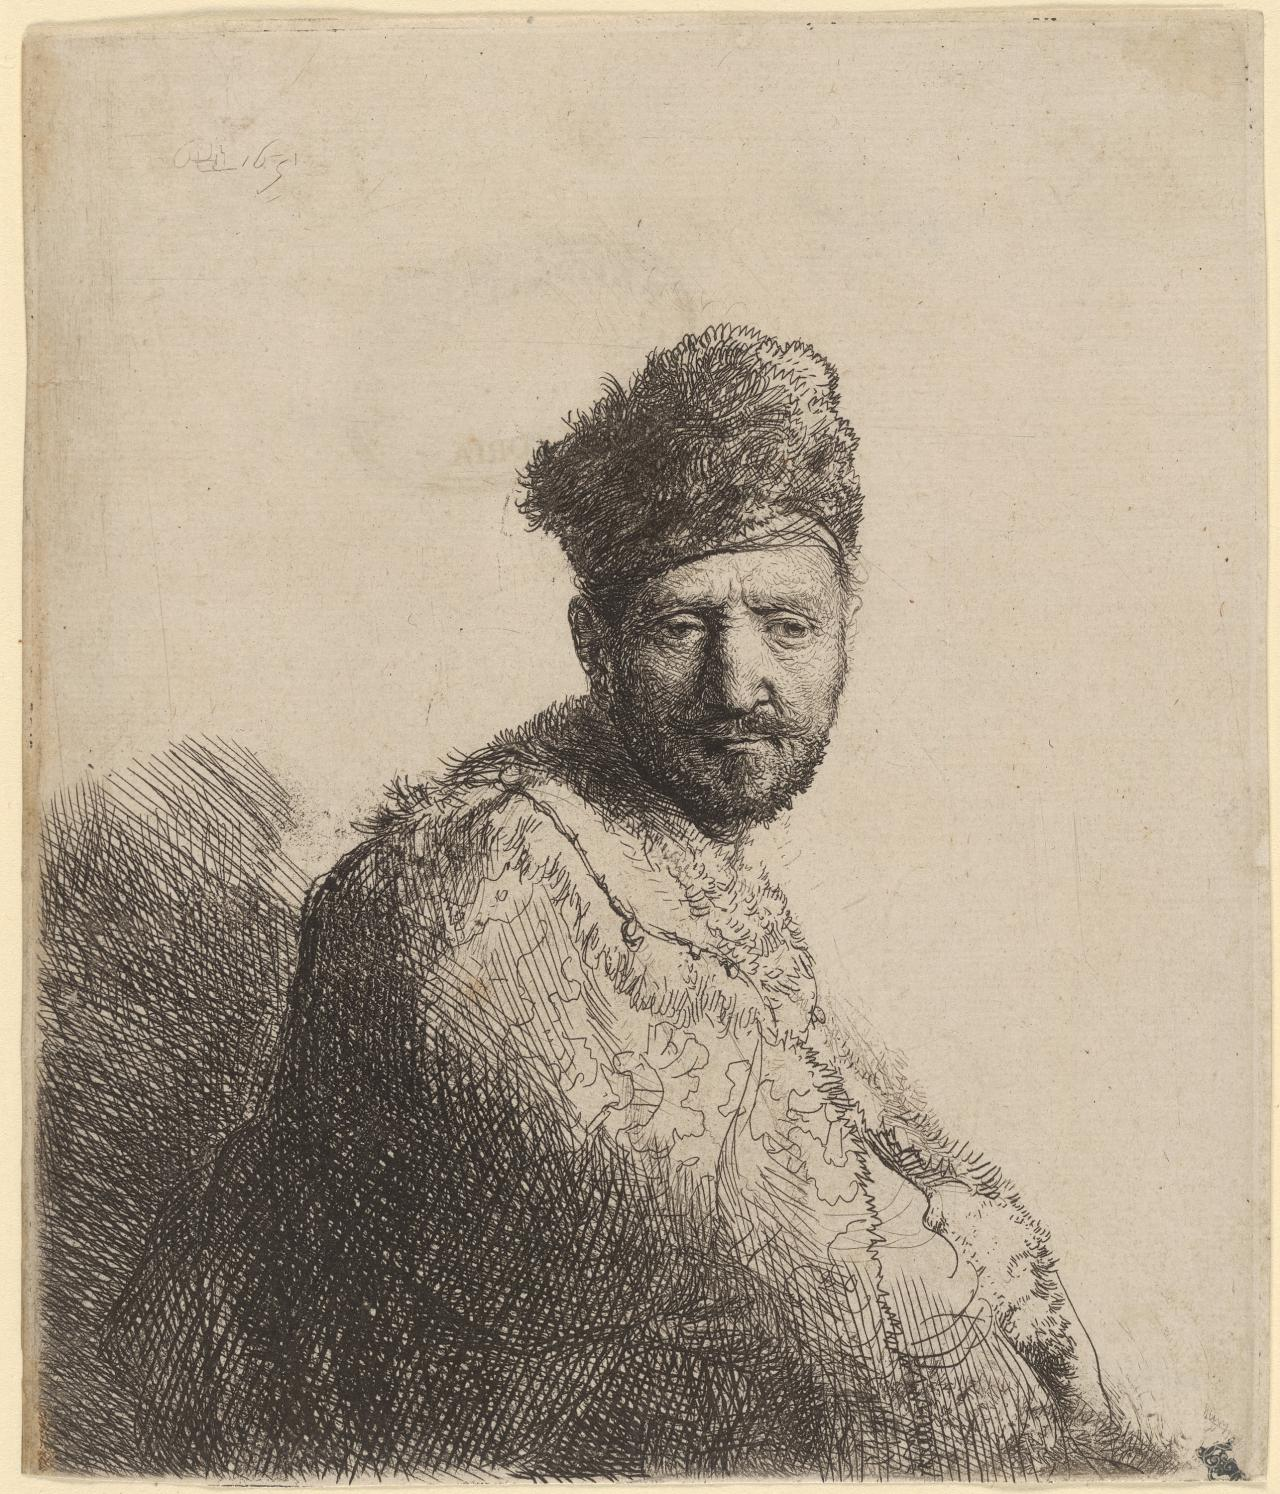 Bearded man in a furred oriental cap and robe